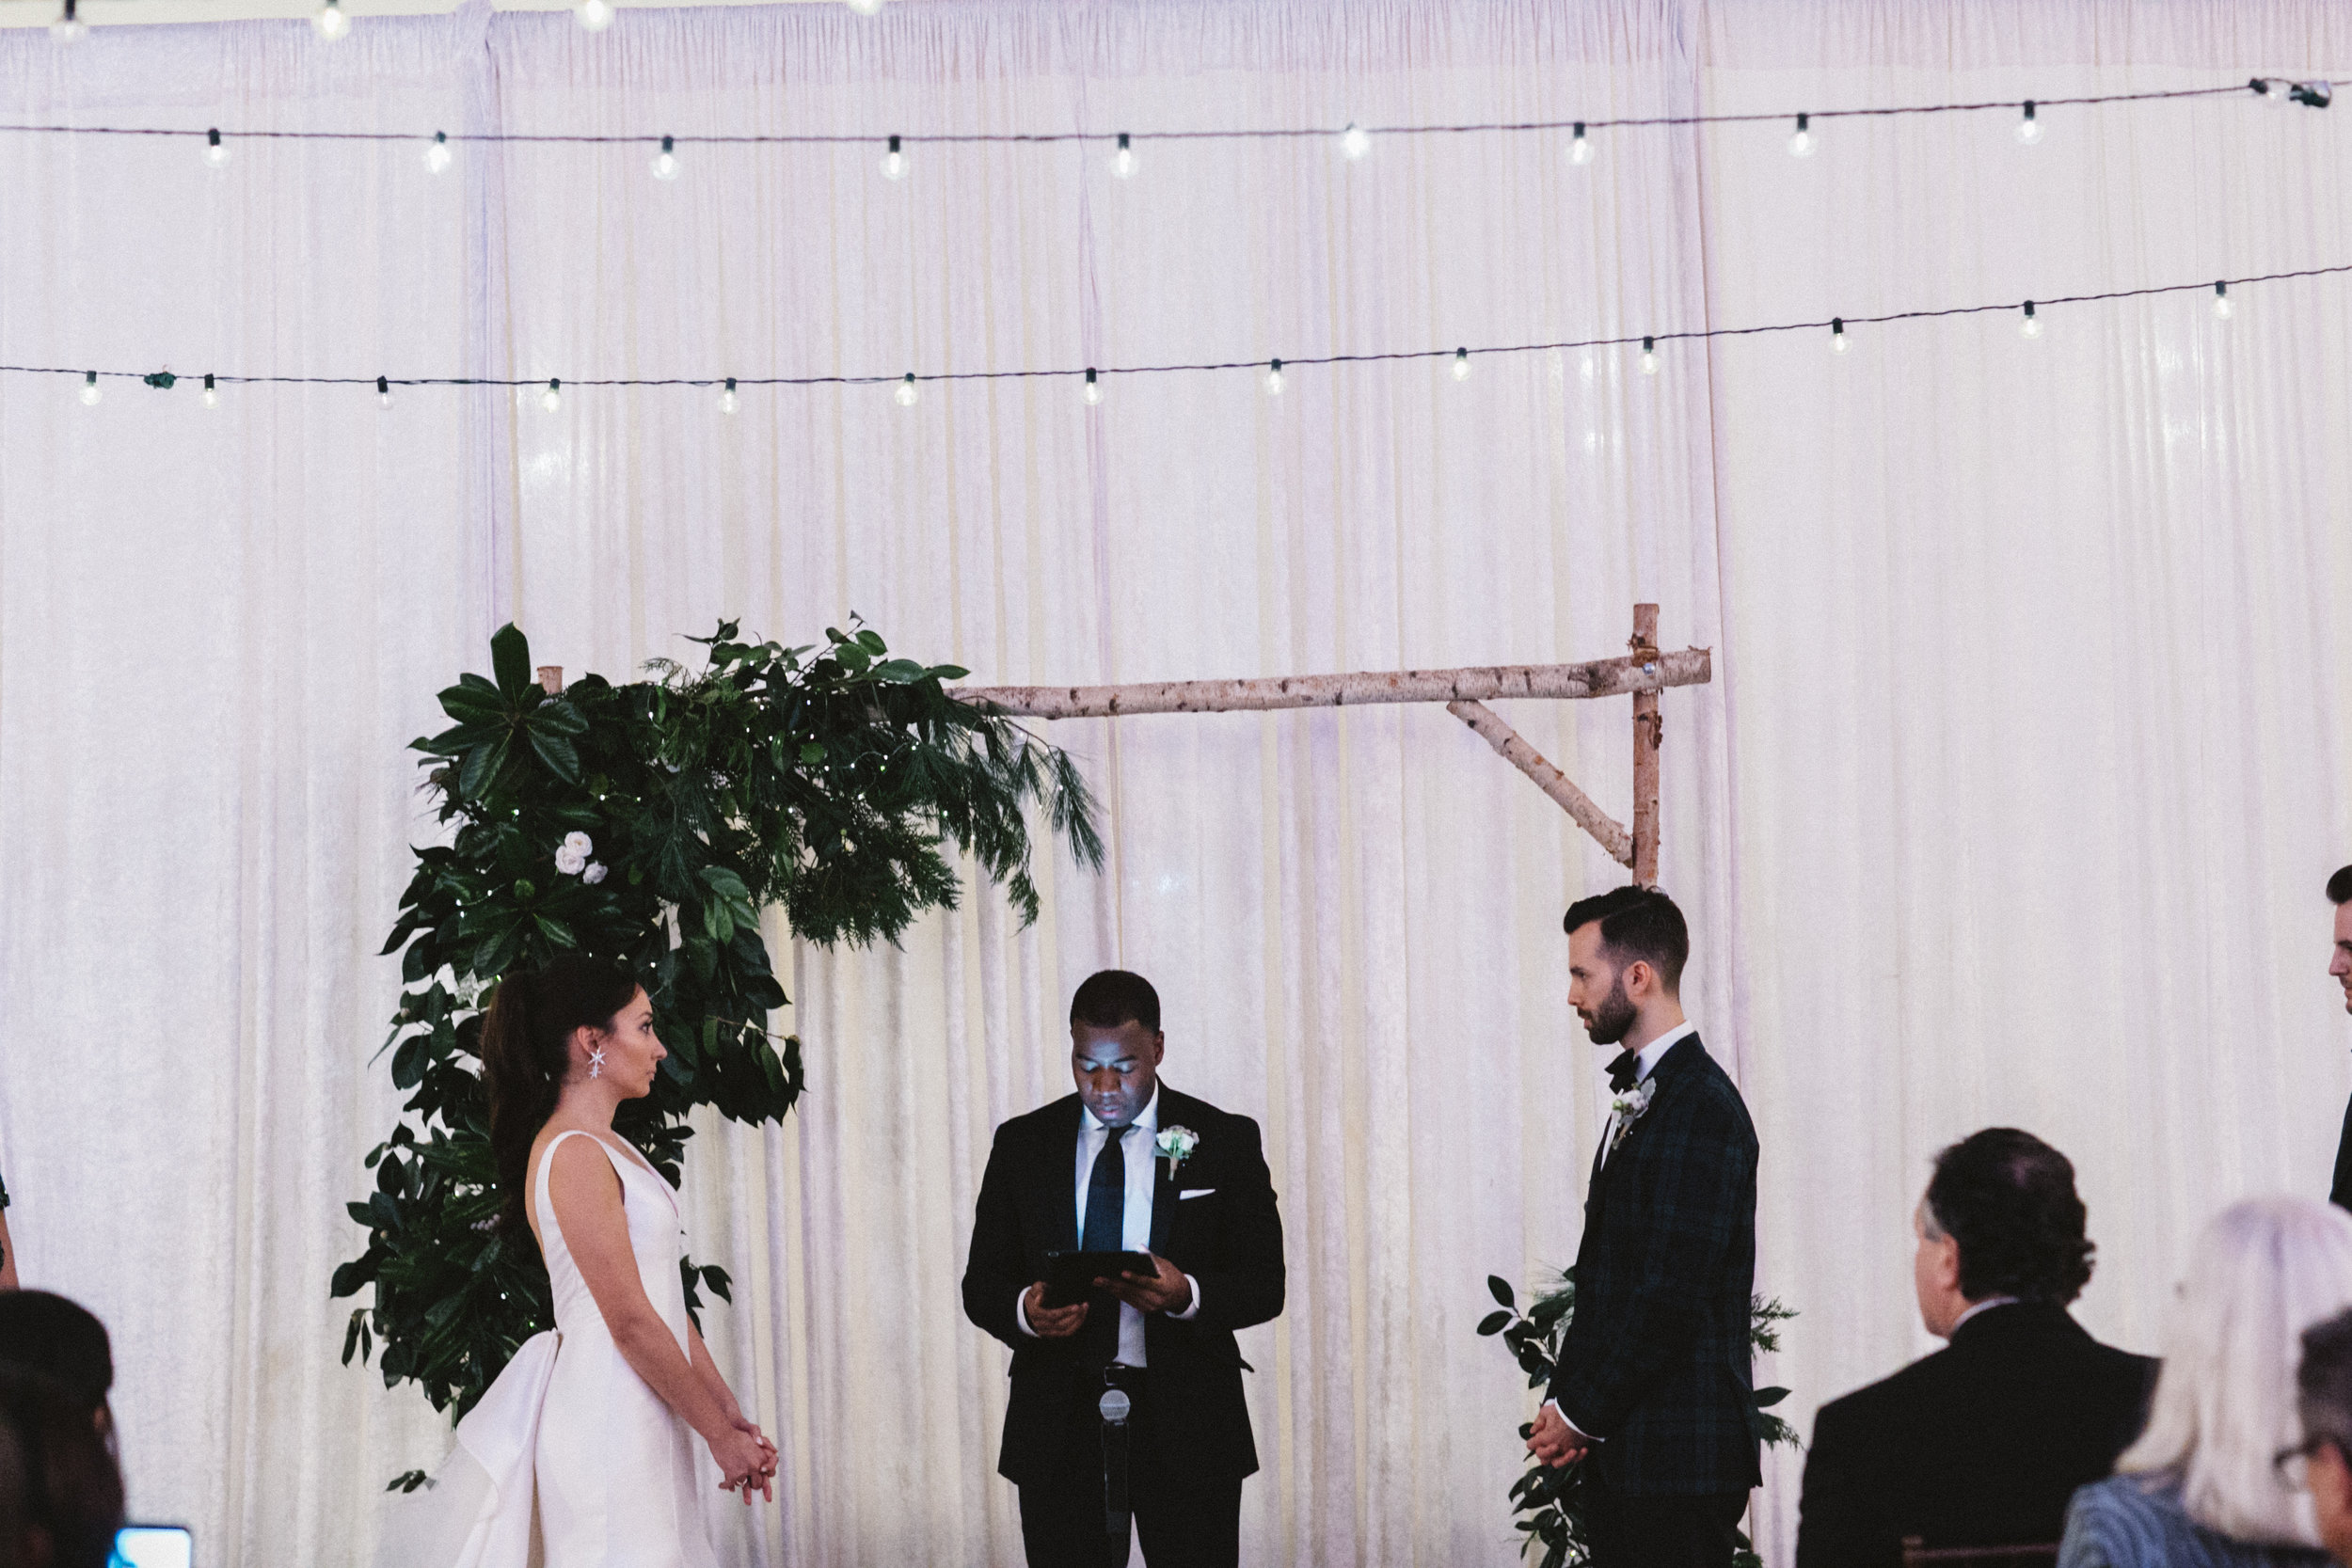 Ceremony in a market in Washington D.C.